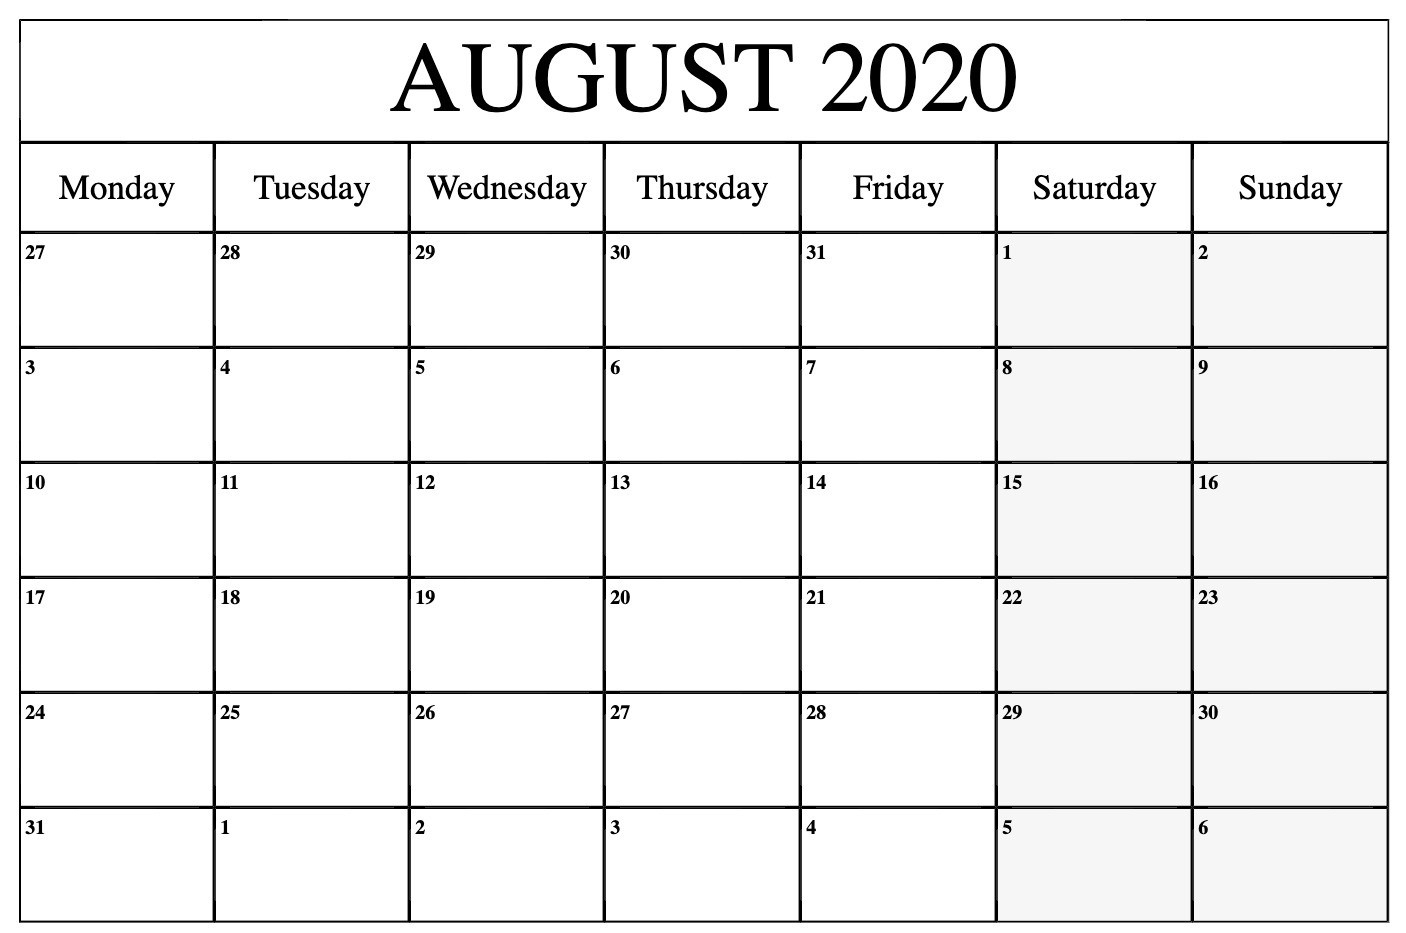 August 2020 Calendar Printable Template With Holidays  Calendar 2020 August To December Template